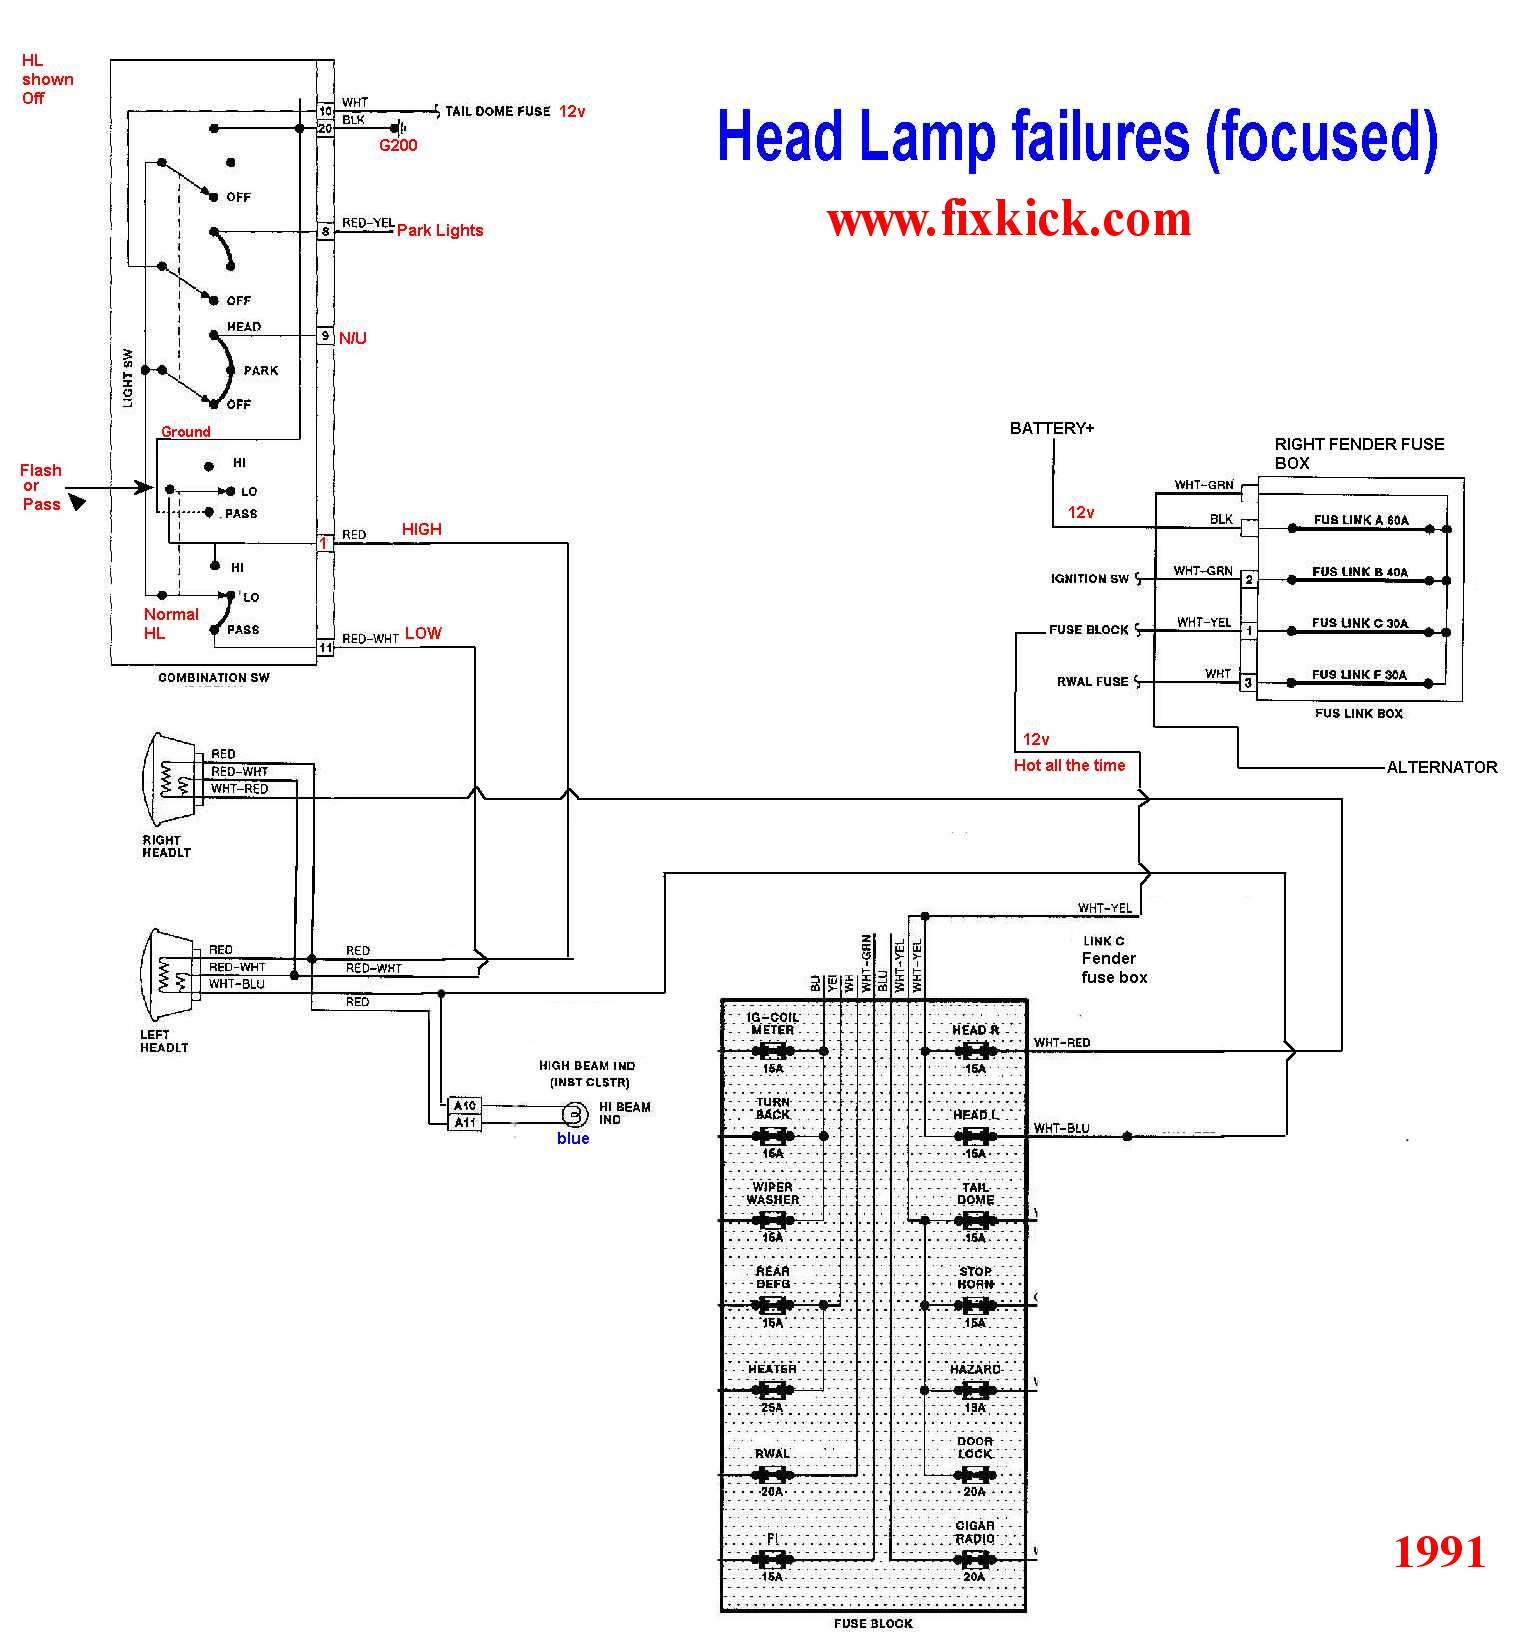 HL1A geo tracker wiring diagram 92 geo tracker wiring diagram \u2022 free 1991 geo metro headlight wiring diagram at readyjetset.co